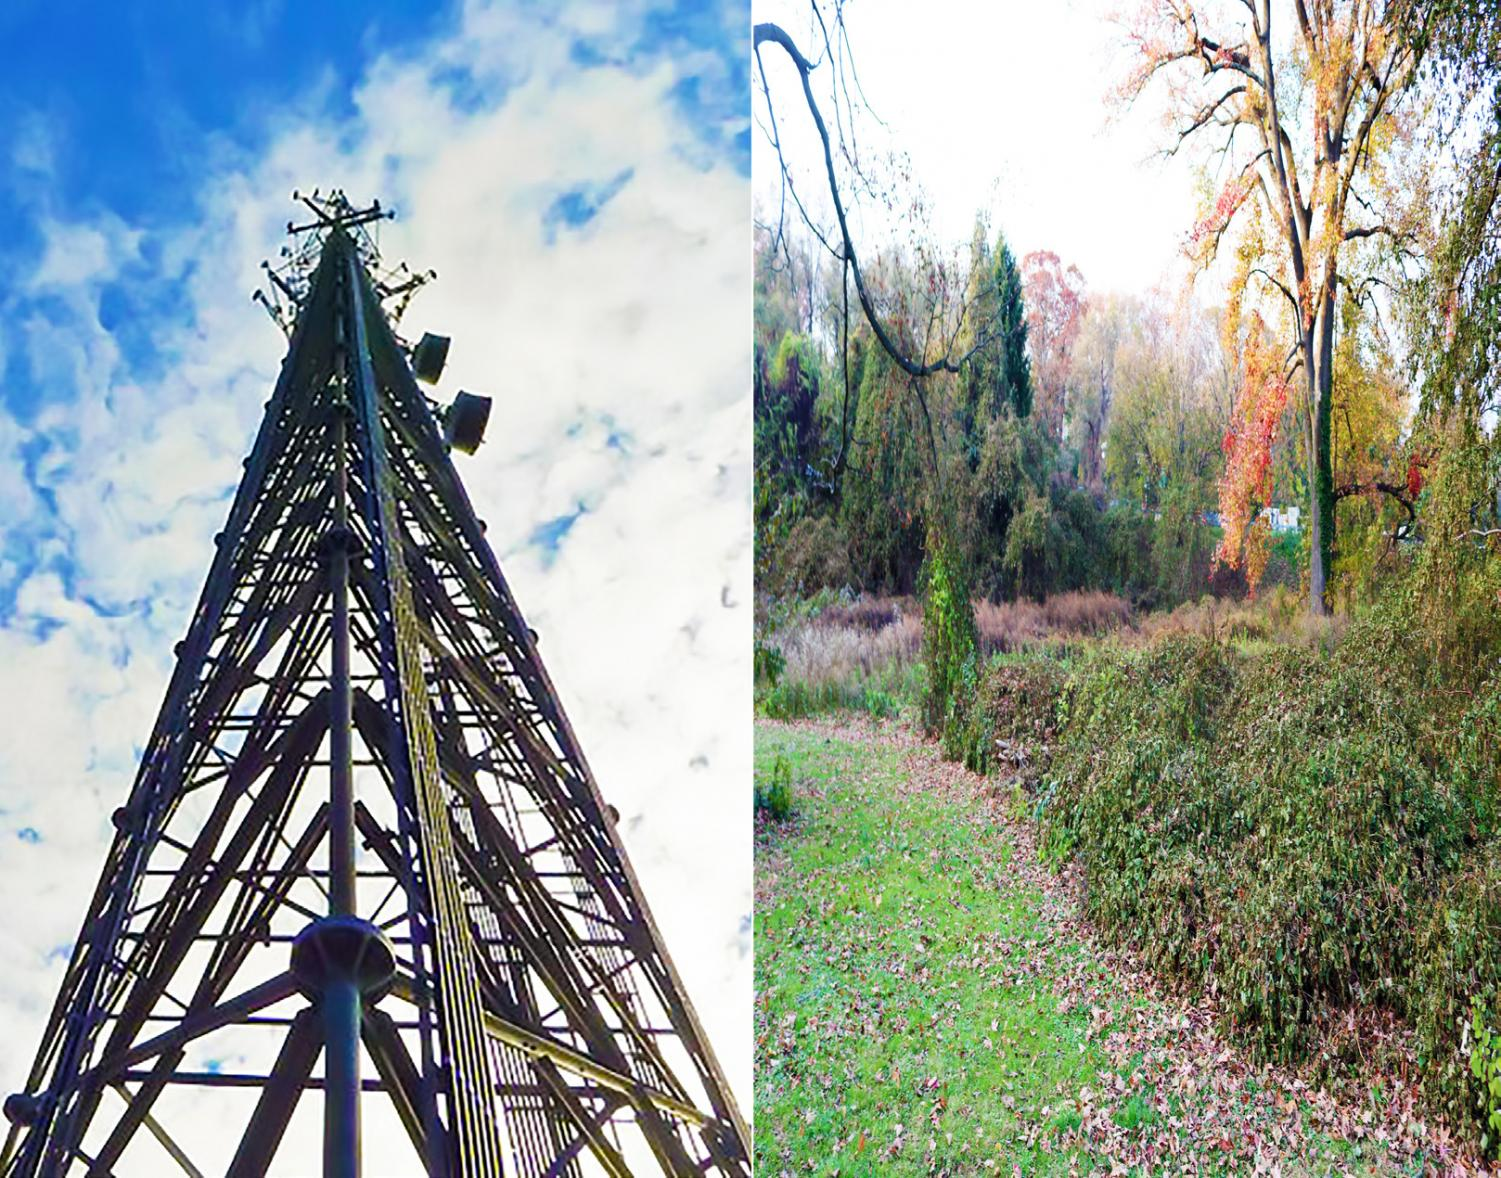 (l) A 130-foot tall cell phone tower similar to this one may soon be casting its shadow across PMHS. (r) the plot of land opposite Pelham's sports field on which the tower may be built.